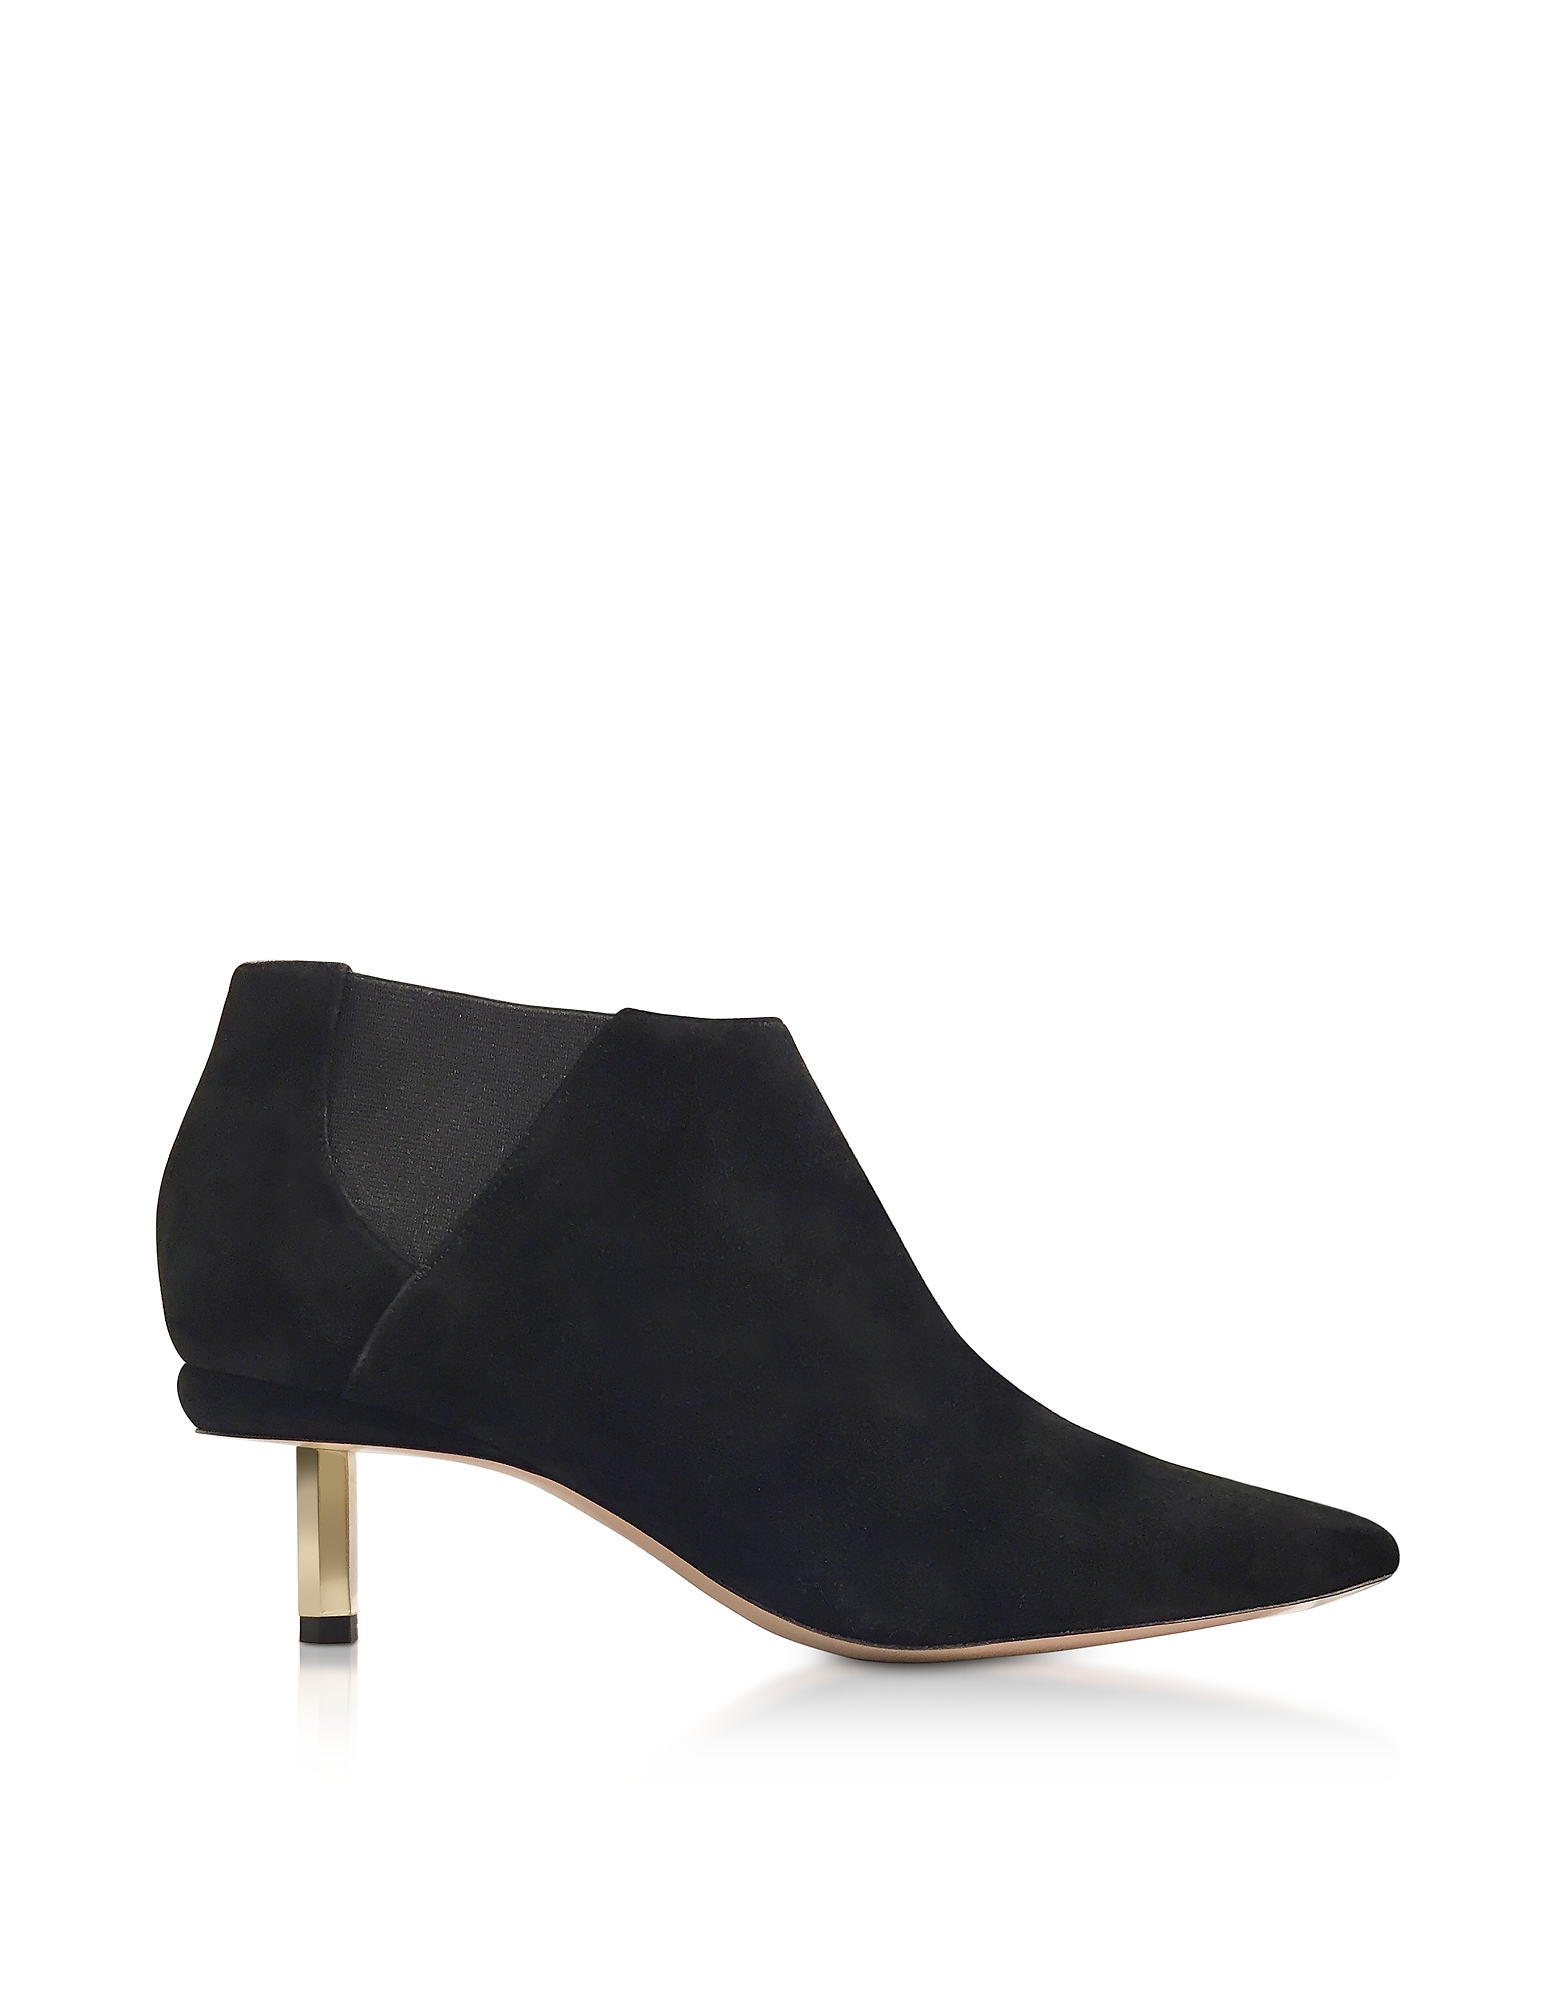 Nicholas Kirkwood Shoes, Black Suede 55mm Polly Chelsea Boots